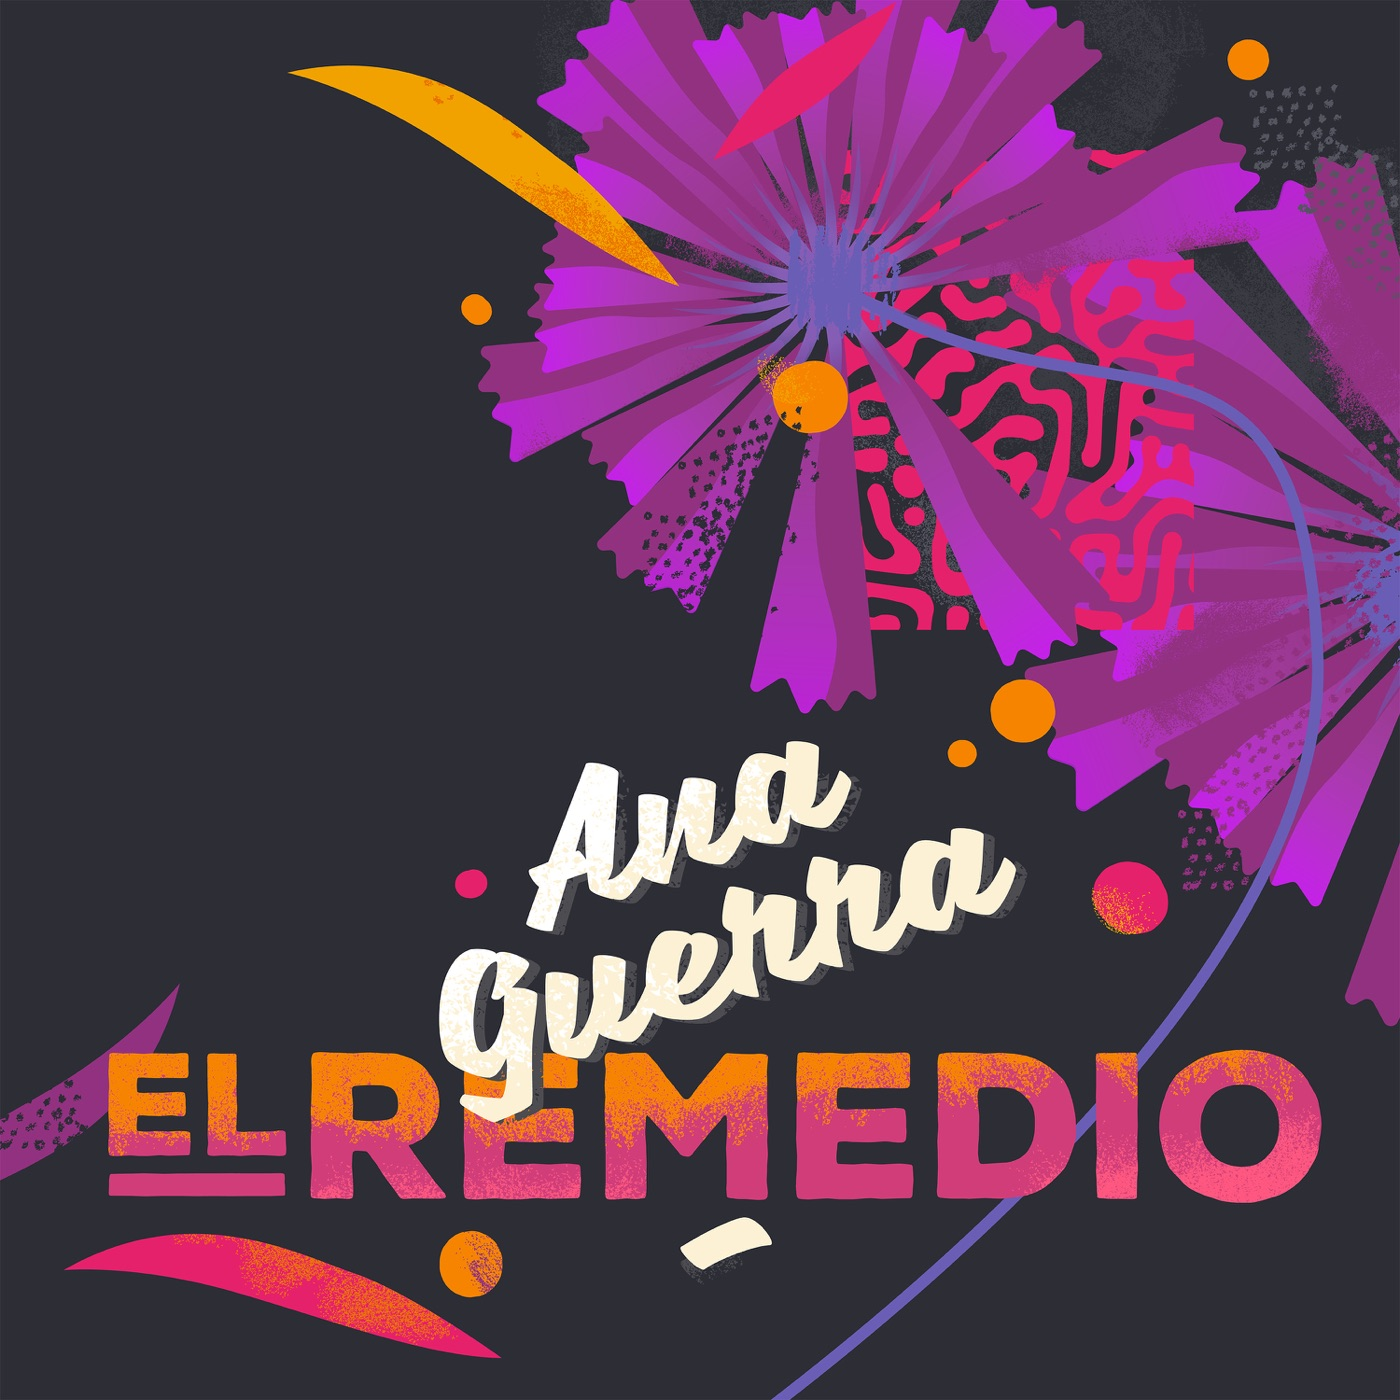 Download ana guerra el remedio single itunes plus aac m4a itunes plus aac m4a malvernweather Choice Image